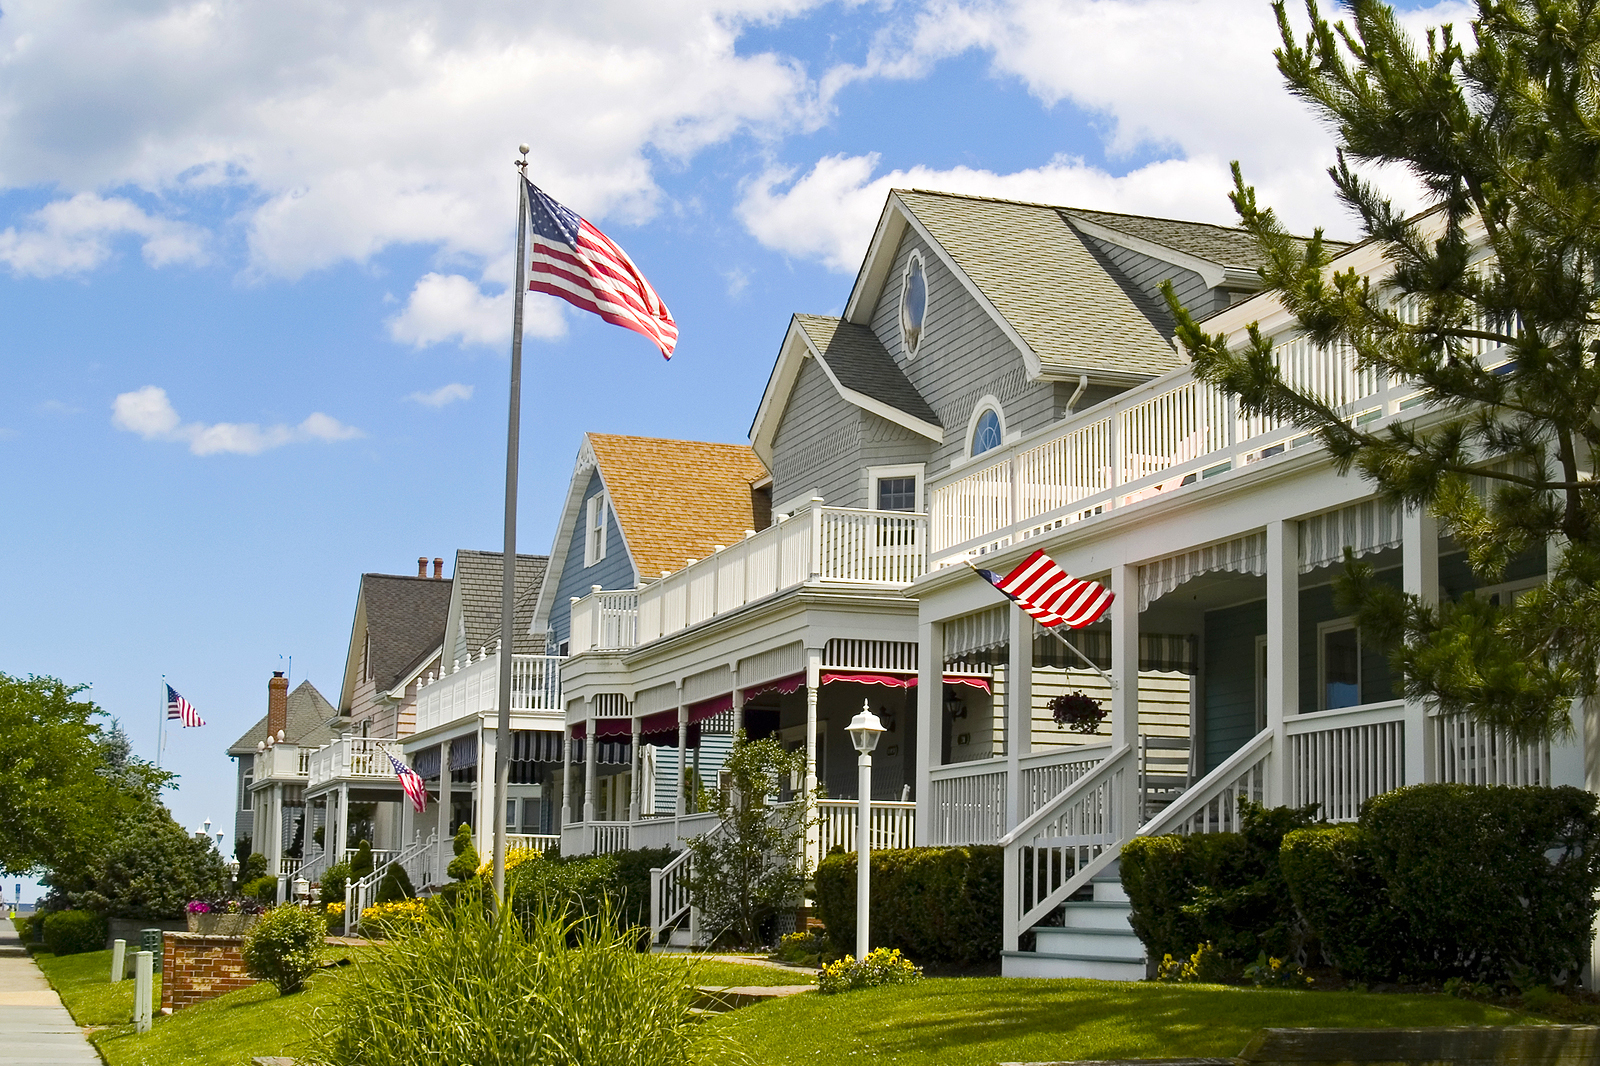 When it comes to homes, recreation, and weather, which New Jersey county is better?